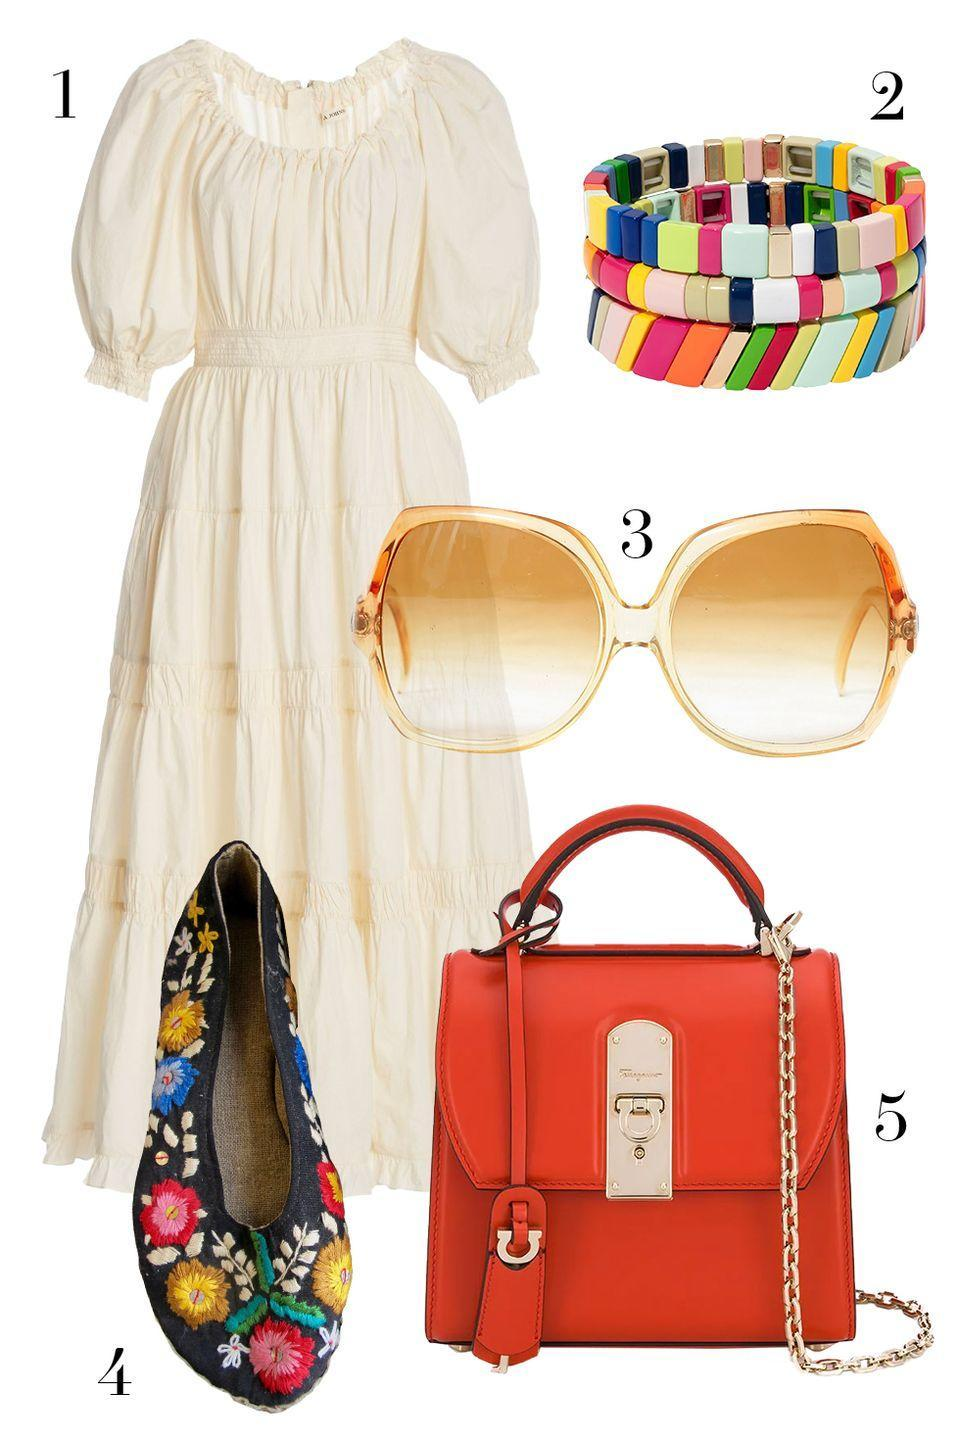 "<p>A flowy white dress and 70s-style sunnies will having you playing The Beatles, Bowie, and Fleetwood Mac on repeat, but practical floral flats and a new purse offer modern conveniences. </p><p><strong>More:</strong> <a href=""https://www.townandcountrymag.com/style/fashion-trends/g28943129/70s-style-trends-inspiration/"" rel=""nofollow noopener"" target=""_blank"" data-ylk=""slk:70's Trends"" class=""link rapid-noclick-resp"">70's Trends</a></p><p> 1. <a href=""https://go.skimresources.com?id=74968X1525087&xs=1&url=https%3A%2F%2Fwww.modaoperandi.com%2Fulla-johnson-pf20%2Fcolette-shirred-cotton-midi-dress"" rel=""nofollow noopener"" target=""_blank"" data-ylk=""slk:Ulla Johnson"" class=""link rapid-noclick-resp"">Ulla Johnson</a> 2. <a href=""https://go.skimresources.com?id=74968X1525087&xs=1&url=https%3A%2F%2Fwww.net-a-porter.com%2Fen-us%2Fshop%2Fproduct%2Froxanne-assoulin%2Ffruit-stripe-set-of-three-enamel-and-gold-plated-bracelets%2F1258937"" rel=""nofollow noopener"" target=""_blank"" data-ylk=""slk:Roxanne Assoulin"" class=""link rapid-noclick-resp"">Roxanne Assoulin</a> 3. <a href=""https://go.skimresources.com?id=74968X1525087&xs=1&url=https%3A%2F%2Fwww.resee.com%2Fvintage-oversized-sunglasses.html"" rel=""nofollow noopener"" target=""_blank"" data-ylk=""slk:Vintage sunglasses via Resee"" class=""link rapid-noclick-resp"">Vintage sunglasses via Resee</a> 4. <a href=""https://go.skimresources.com?id=74968X1525087&xs=1&url=https%3A%2F%2Fnomadvintage.com%2Fcollections%2Fclothing%2Fproducts%2Ffloral-embroidered-slippers"" rel=""nofollow noopener"" target=""_blank"" data-ylk=""slk:Shoes via Nomad Vintage"" class=""link rapid-noclick-resp"">Shoes via Nomad Vintage</a> 5. <a href=""https://go.skimresources.com?id=74968X1525087&xs=1&url=https%3A%2F%2Fwww.farfetch.com%2Fshopping%2Fwomen%2Fsalvatore-ferragamo-mini-boxyz-tote-bag-item-14699991.aspx%3Fstoreid%3D9317"" rel=""nofollow noopener"" target=""_blank"" data-ylk=""slk:Salvatore Ferragamo"" class=""link rapid-noclick-resp"">Salvatore Ferragamo</a></p>"